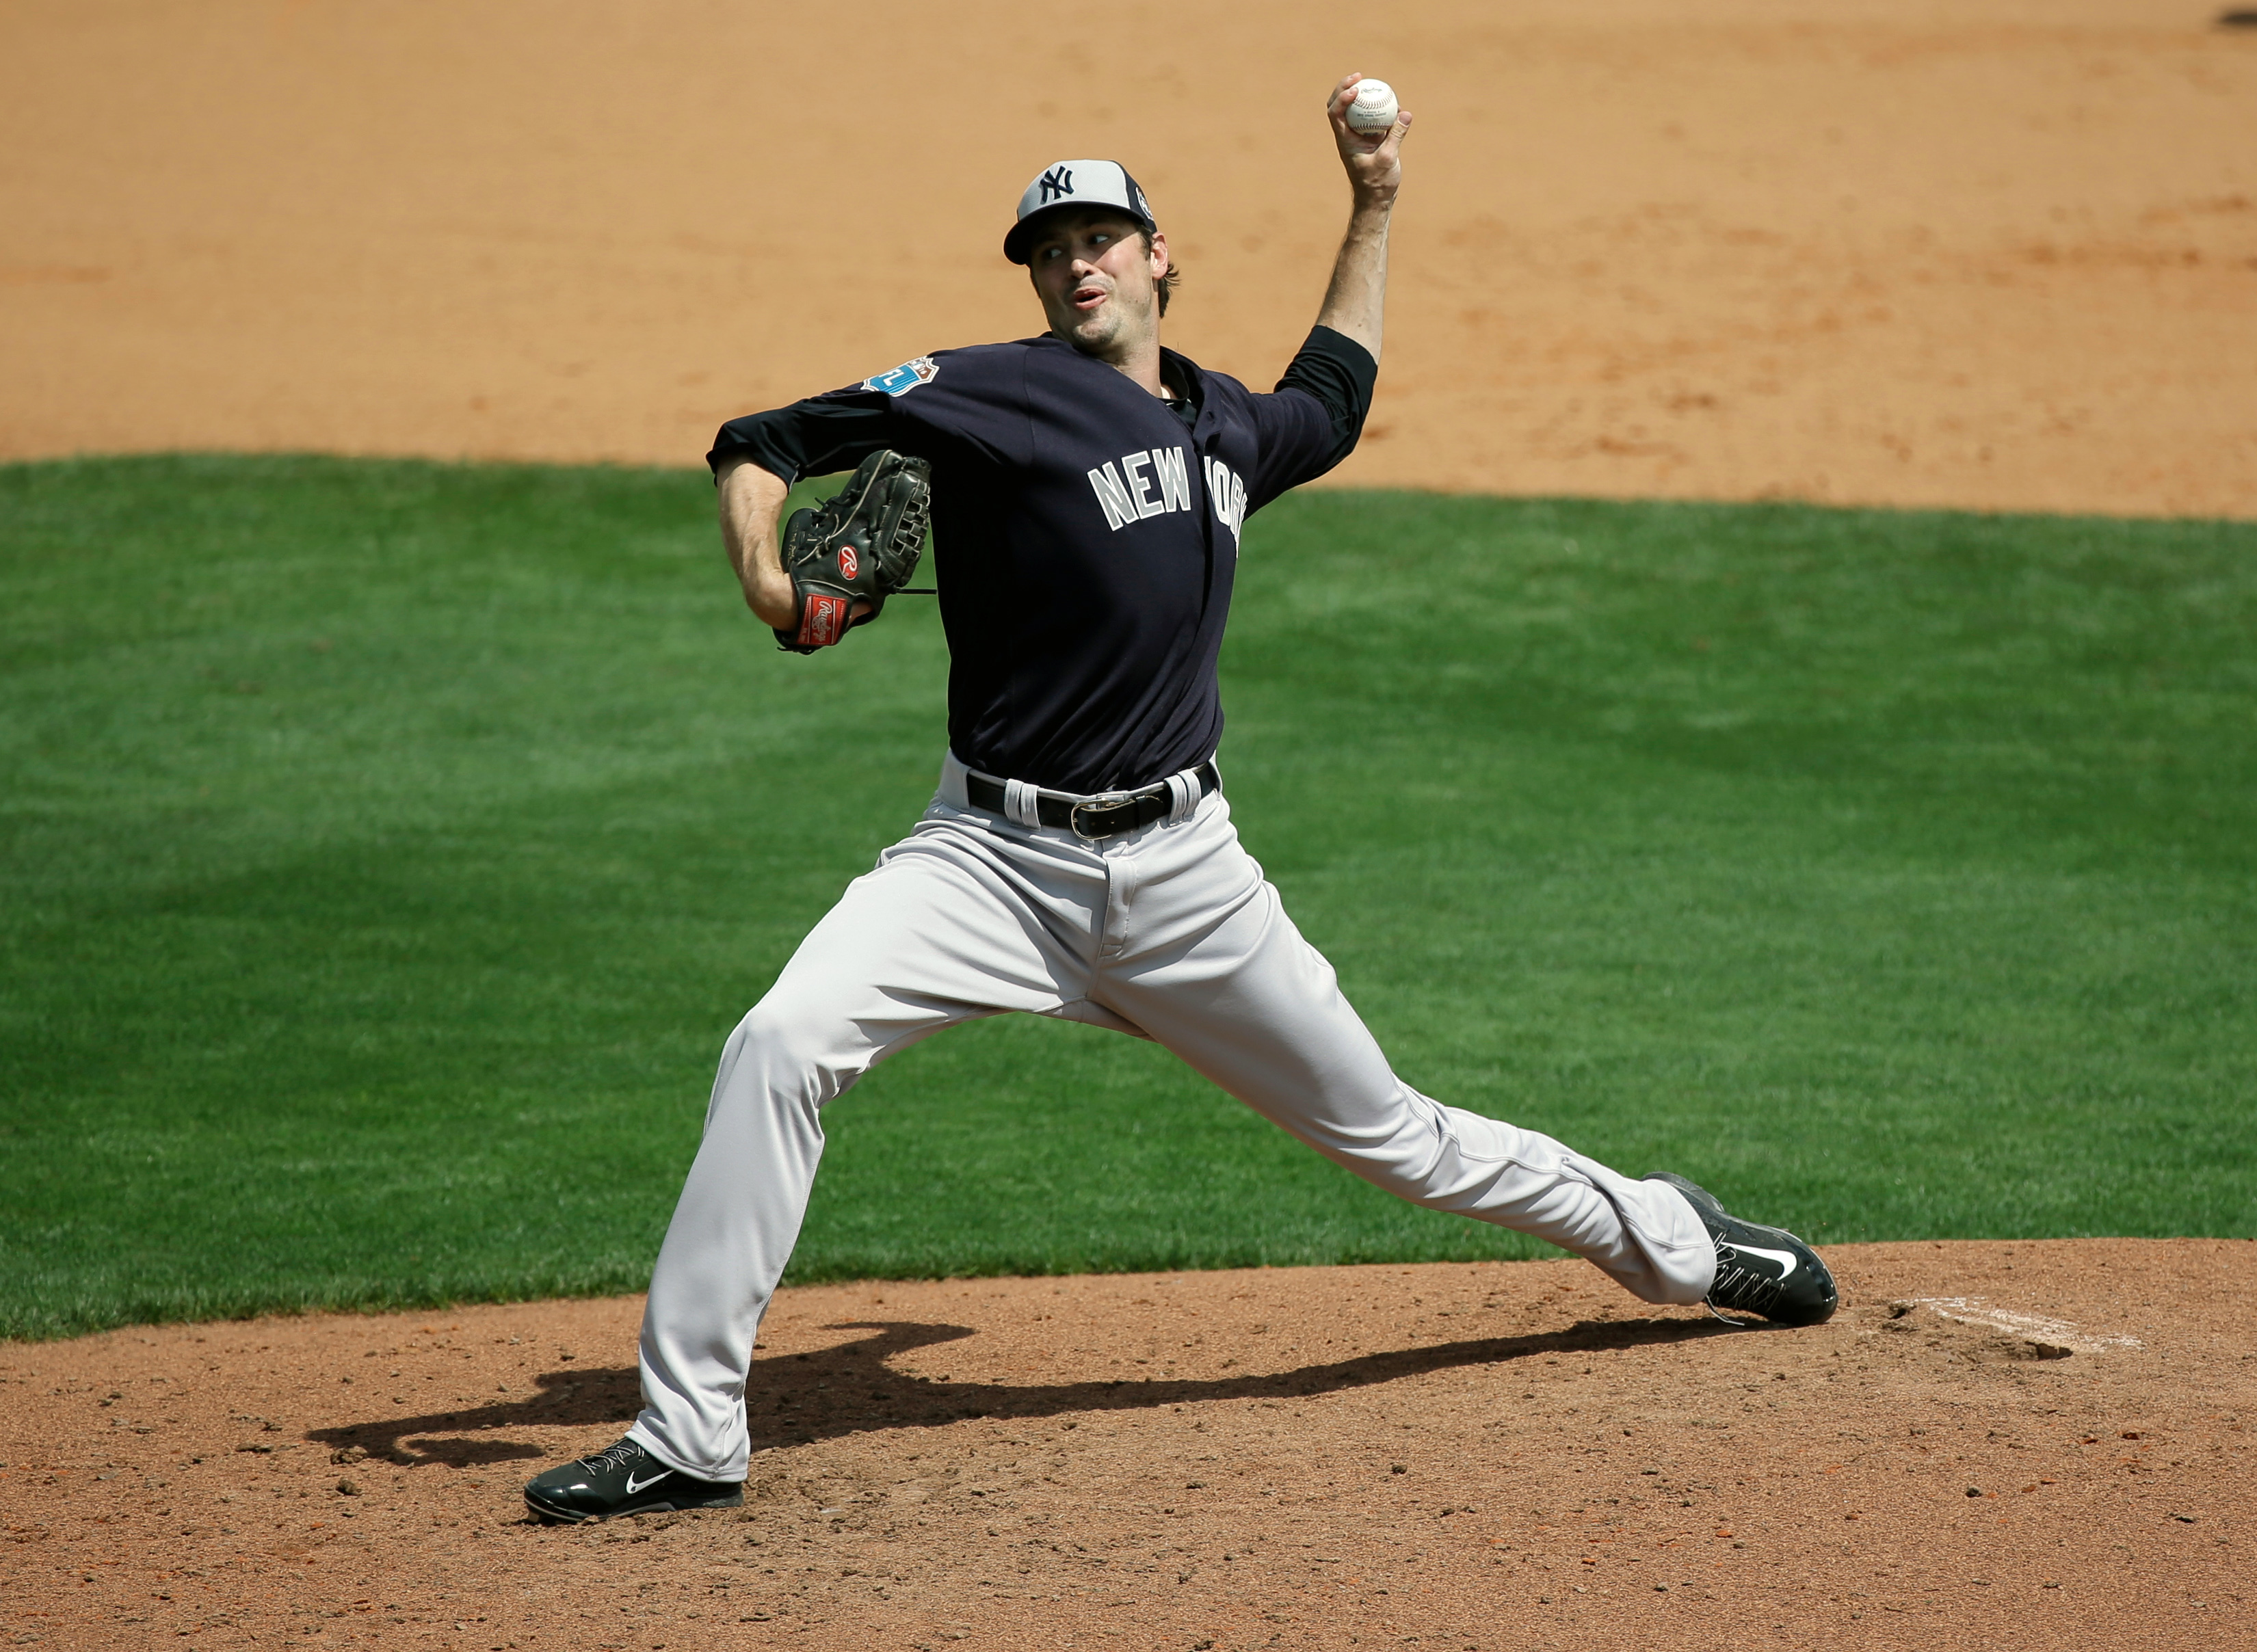 New York Yankees' Andrew Miller pitches against the Atlanta Braves in a spring training baseball game, Wednesday, March 30, 2016, in Kissimmee, Fla. Miller was struck on the right arm by a line drive after the pitch, forcing the left-handed reliever to le